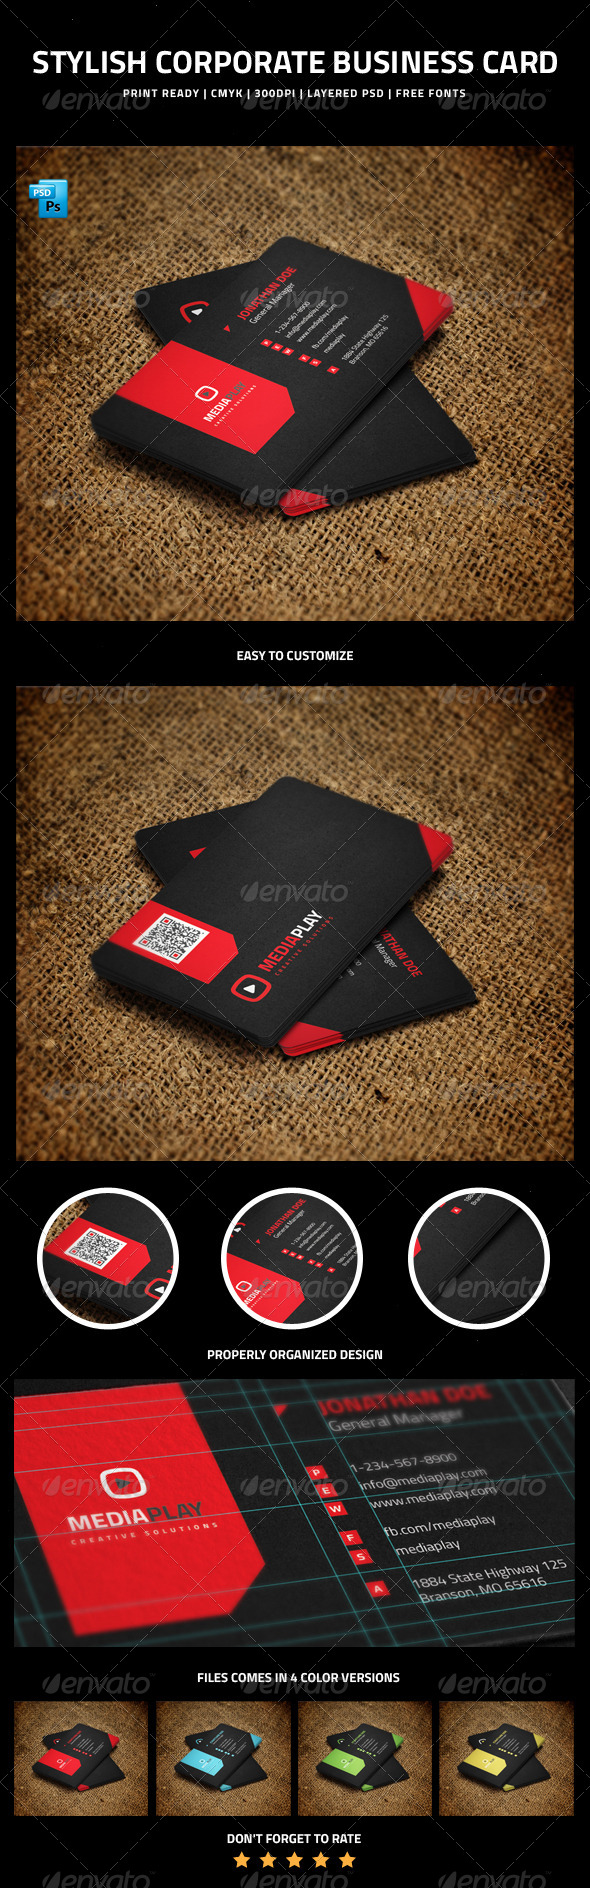 GraphicRiver Stylish Corporate Business Card 6213693